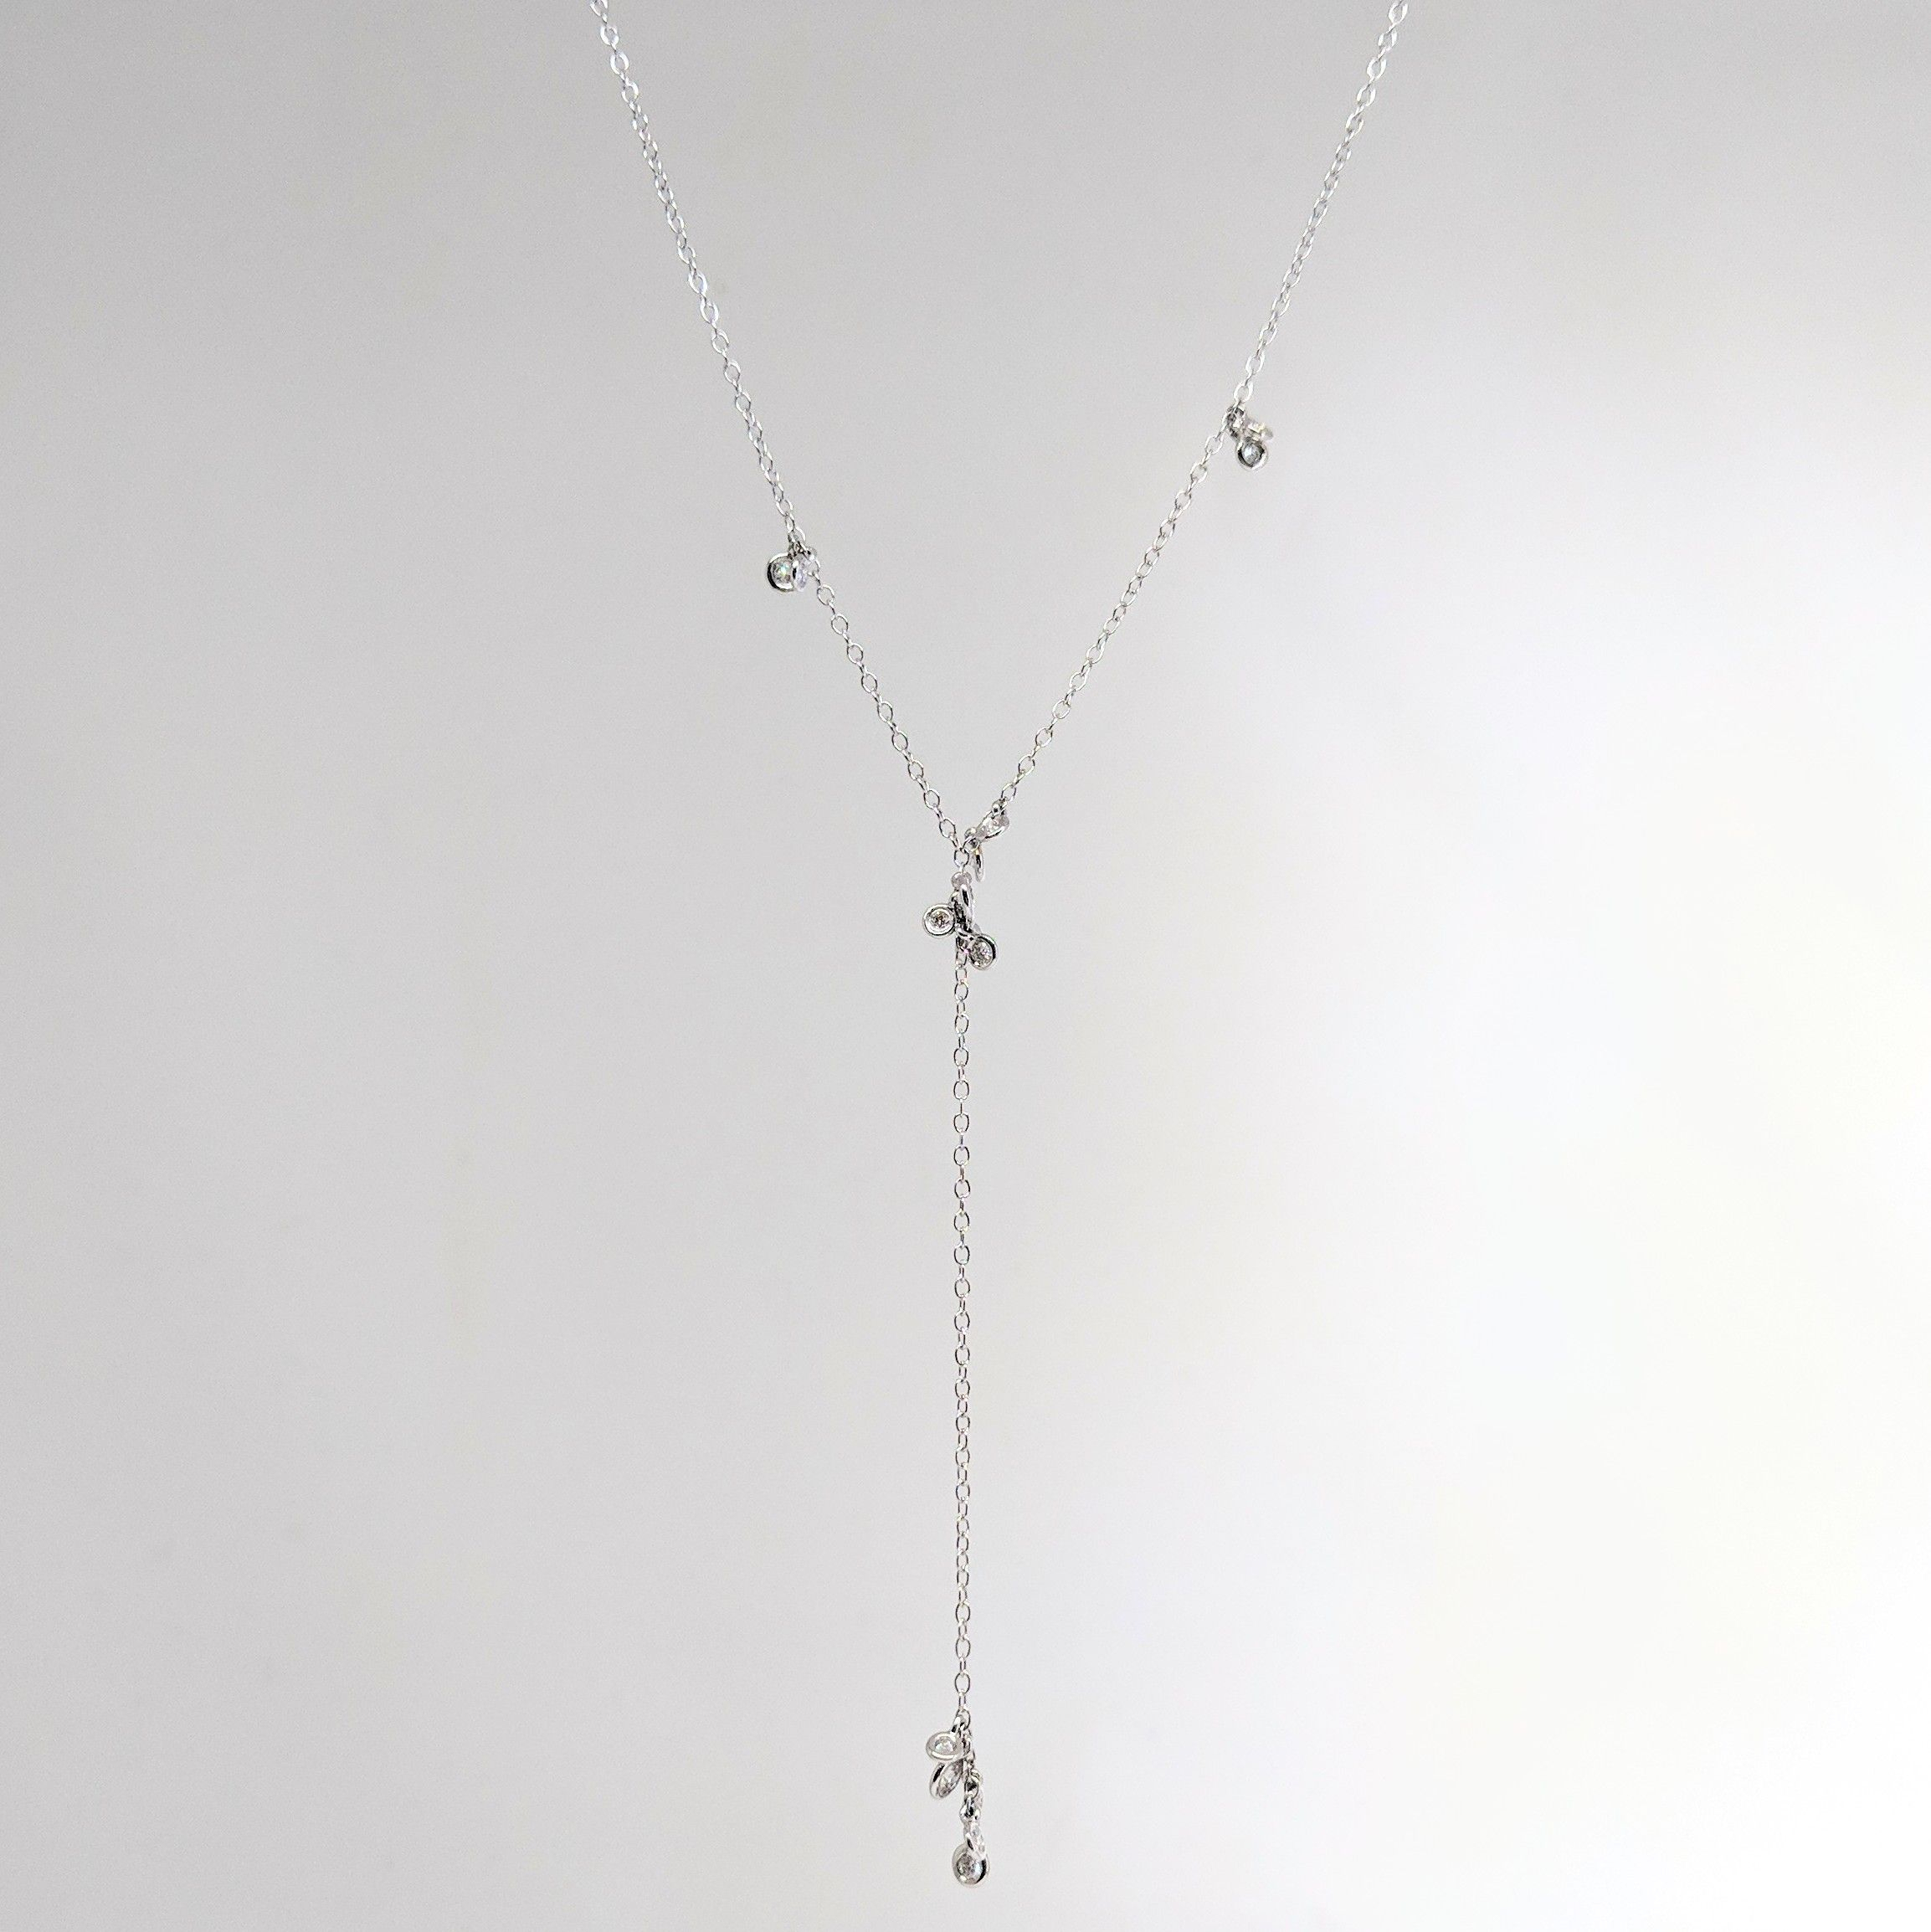 Diamond Cluster Lariat Necklace For Newest Lariat Diamond Necklaces (Gallery 19 of 25)